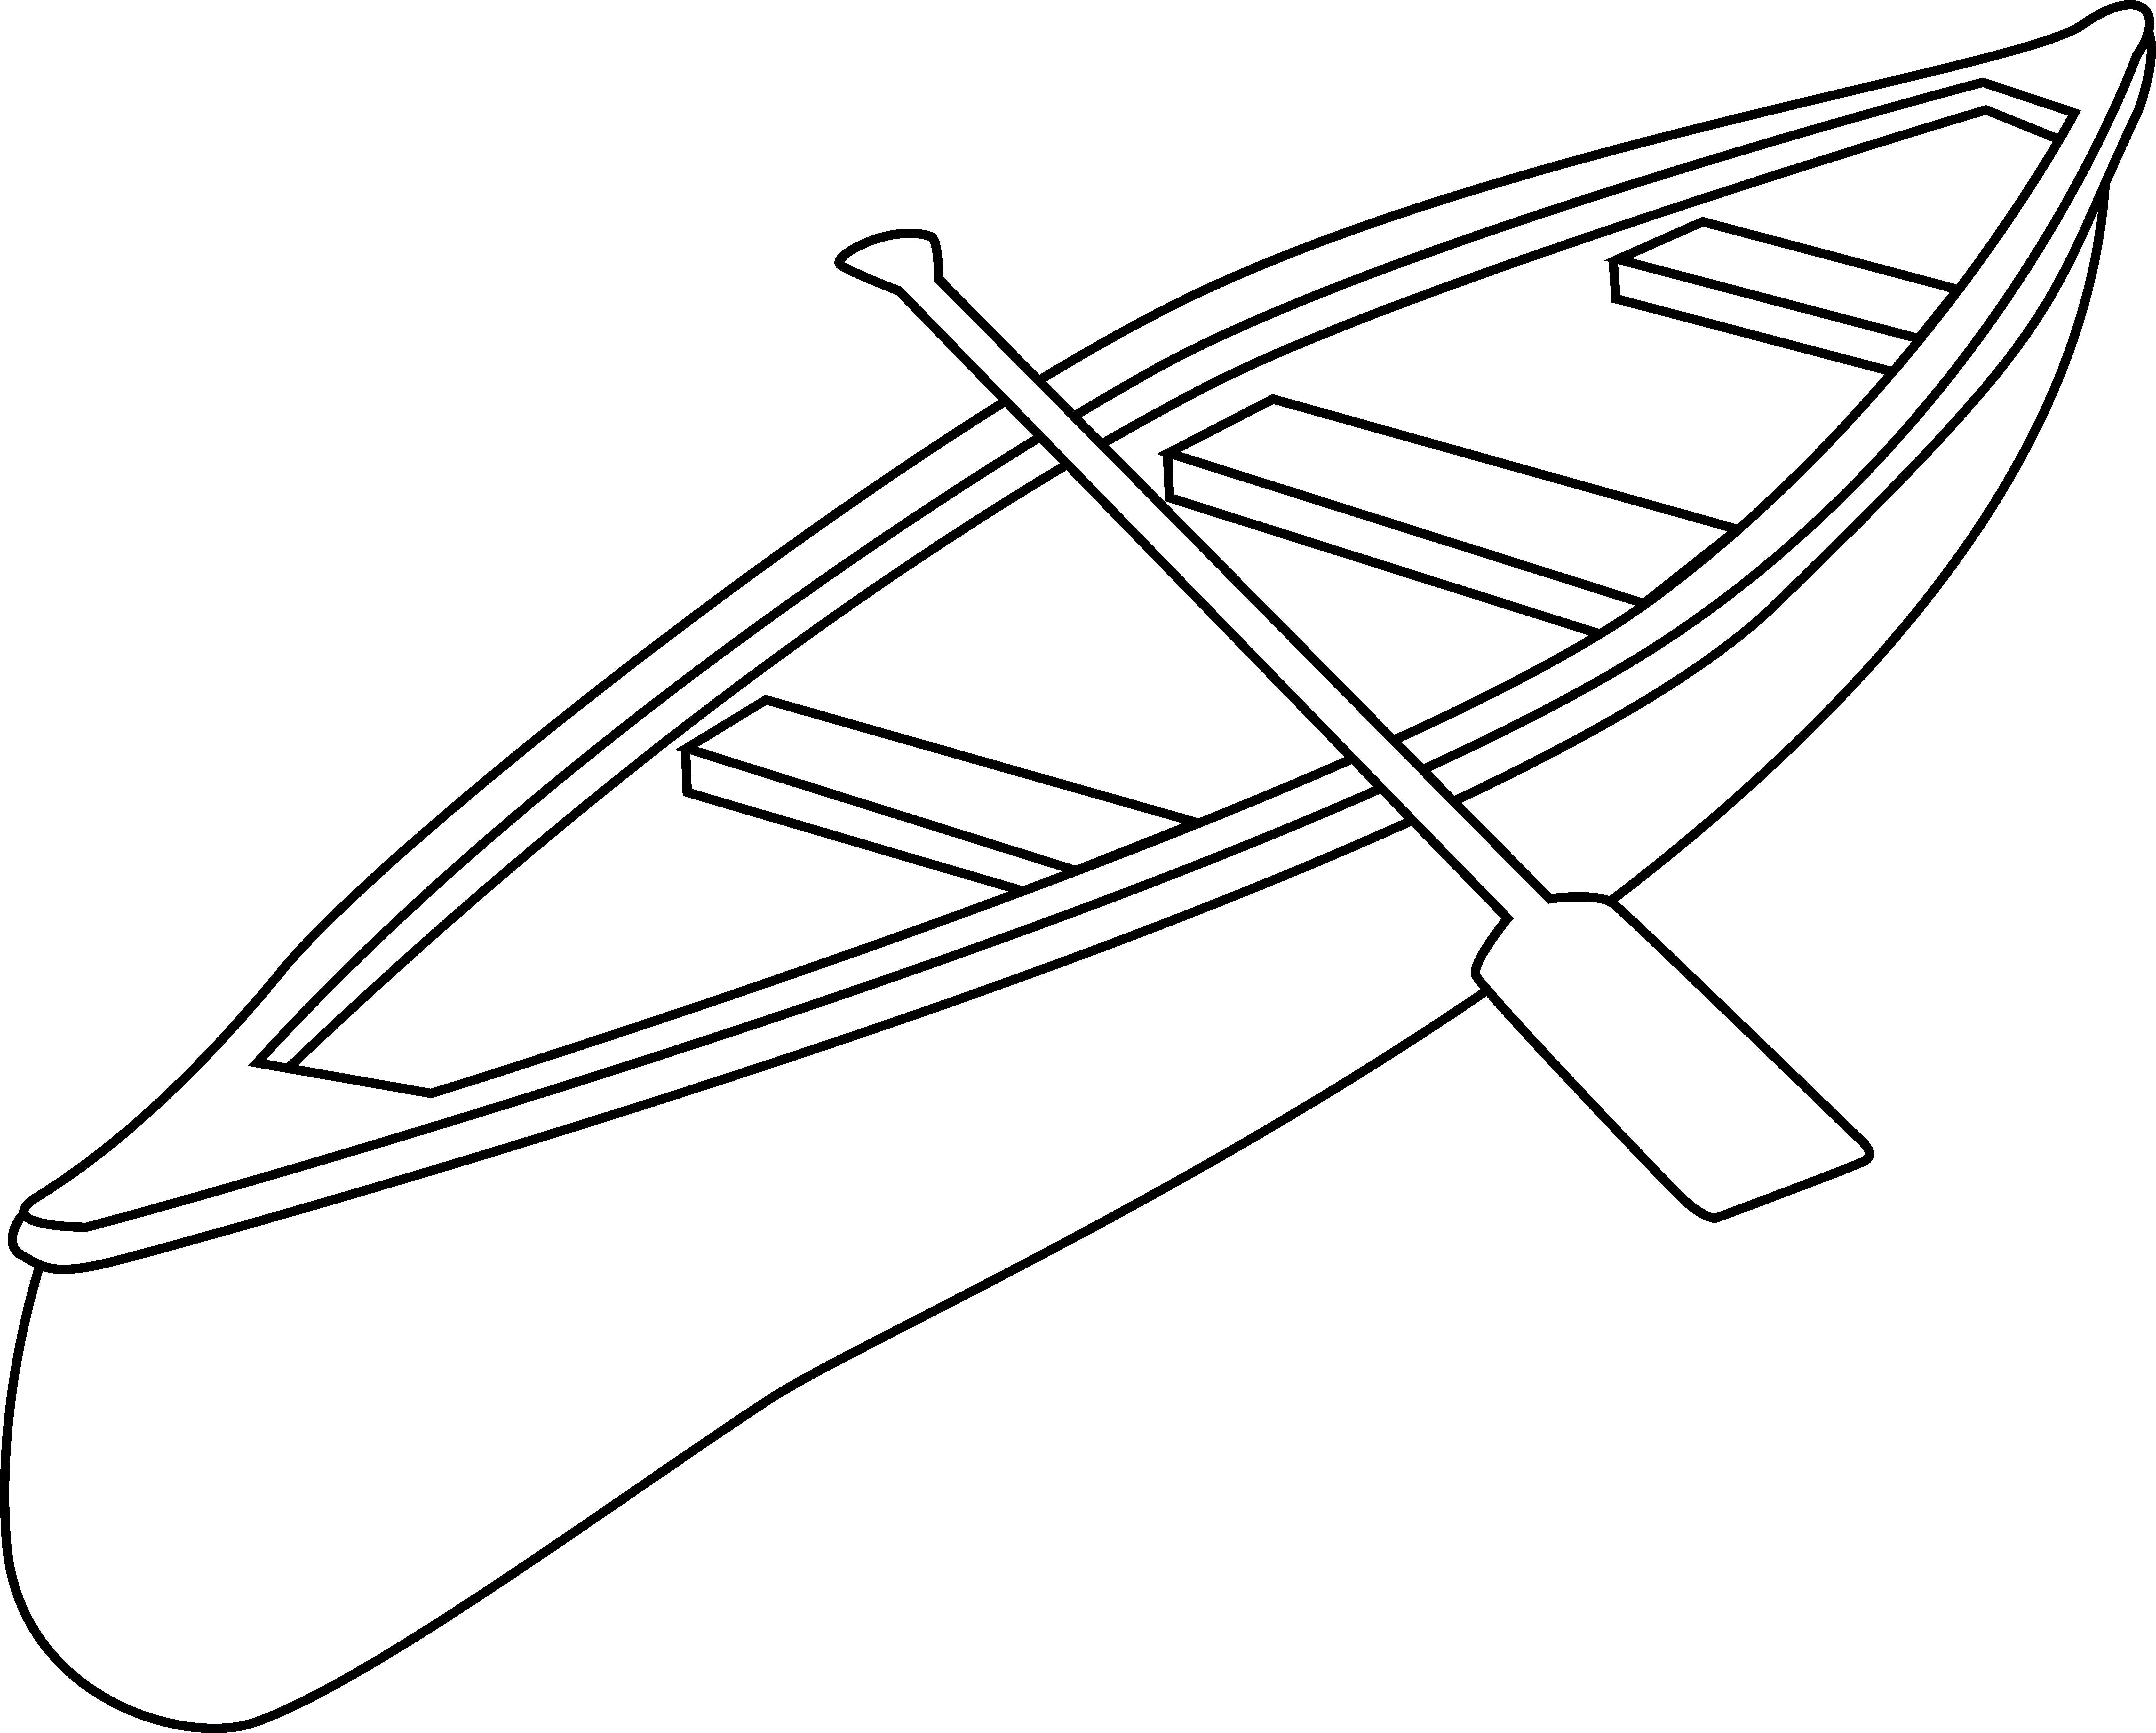 Drawing moana boat. Canoe clipart group with